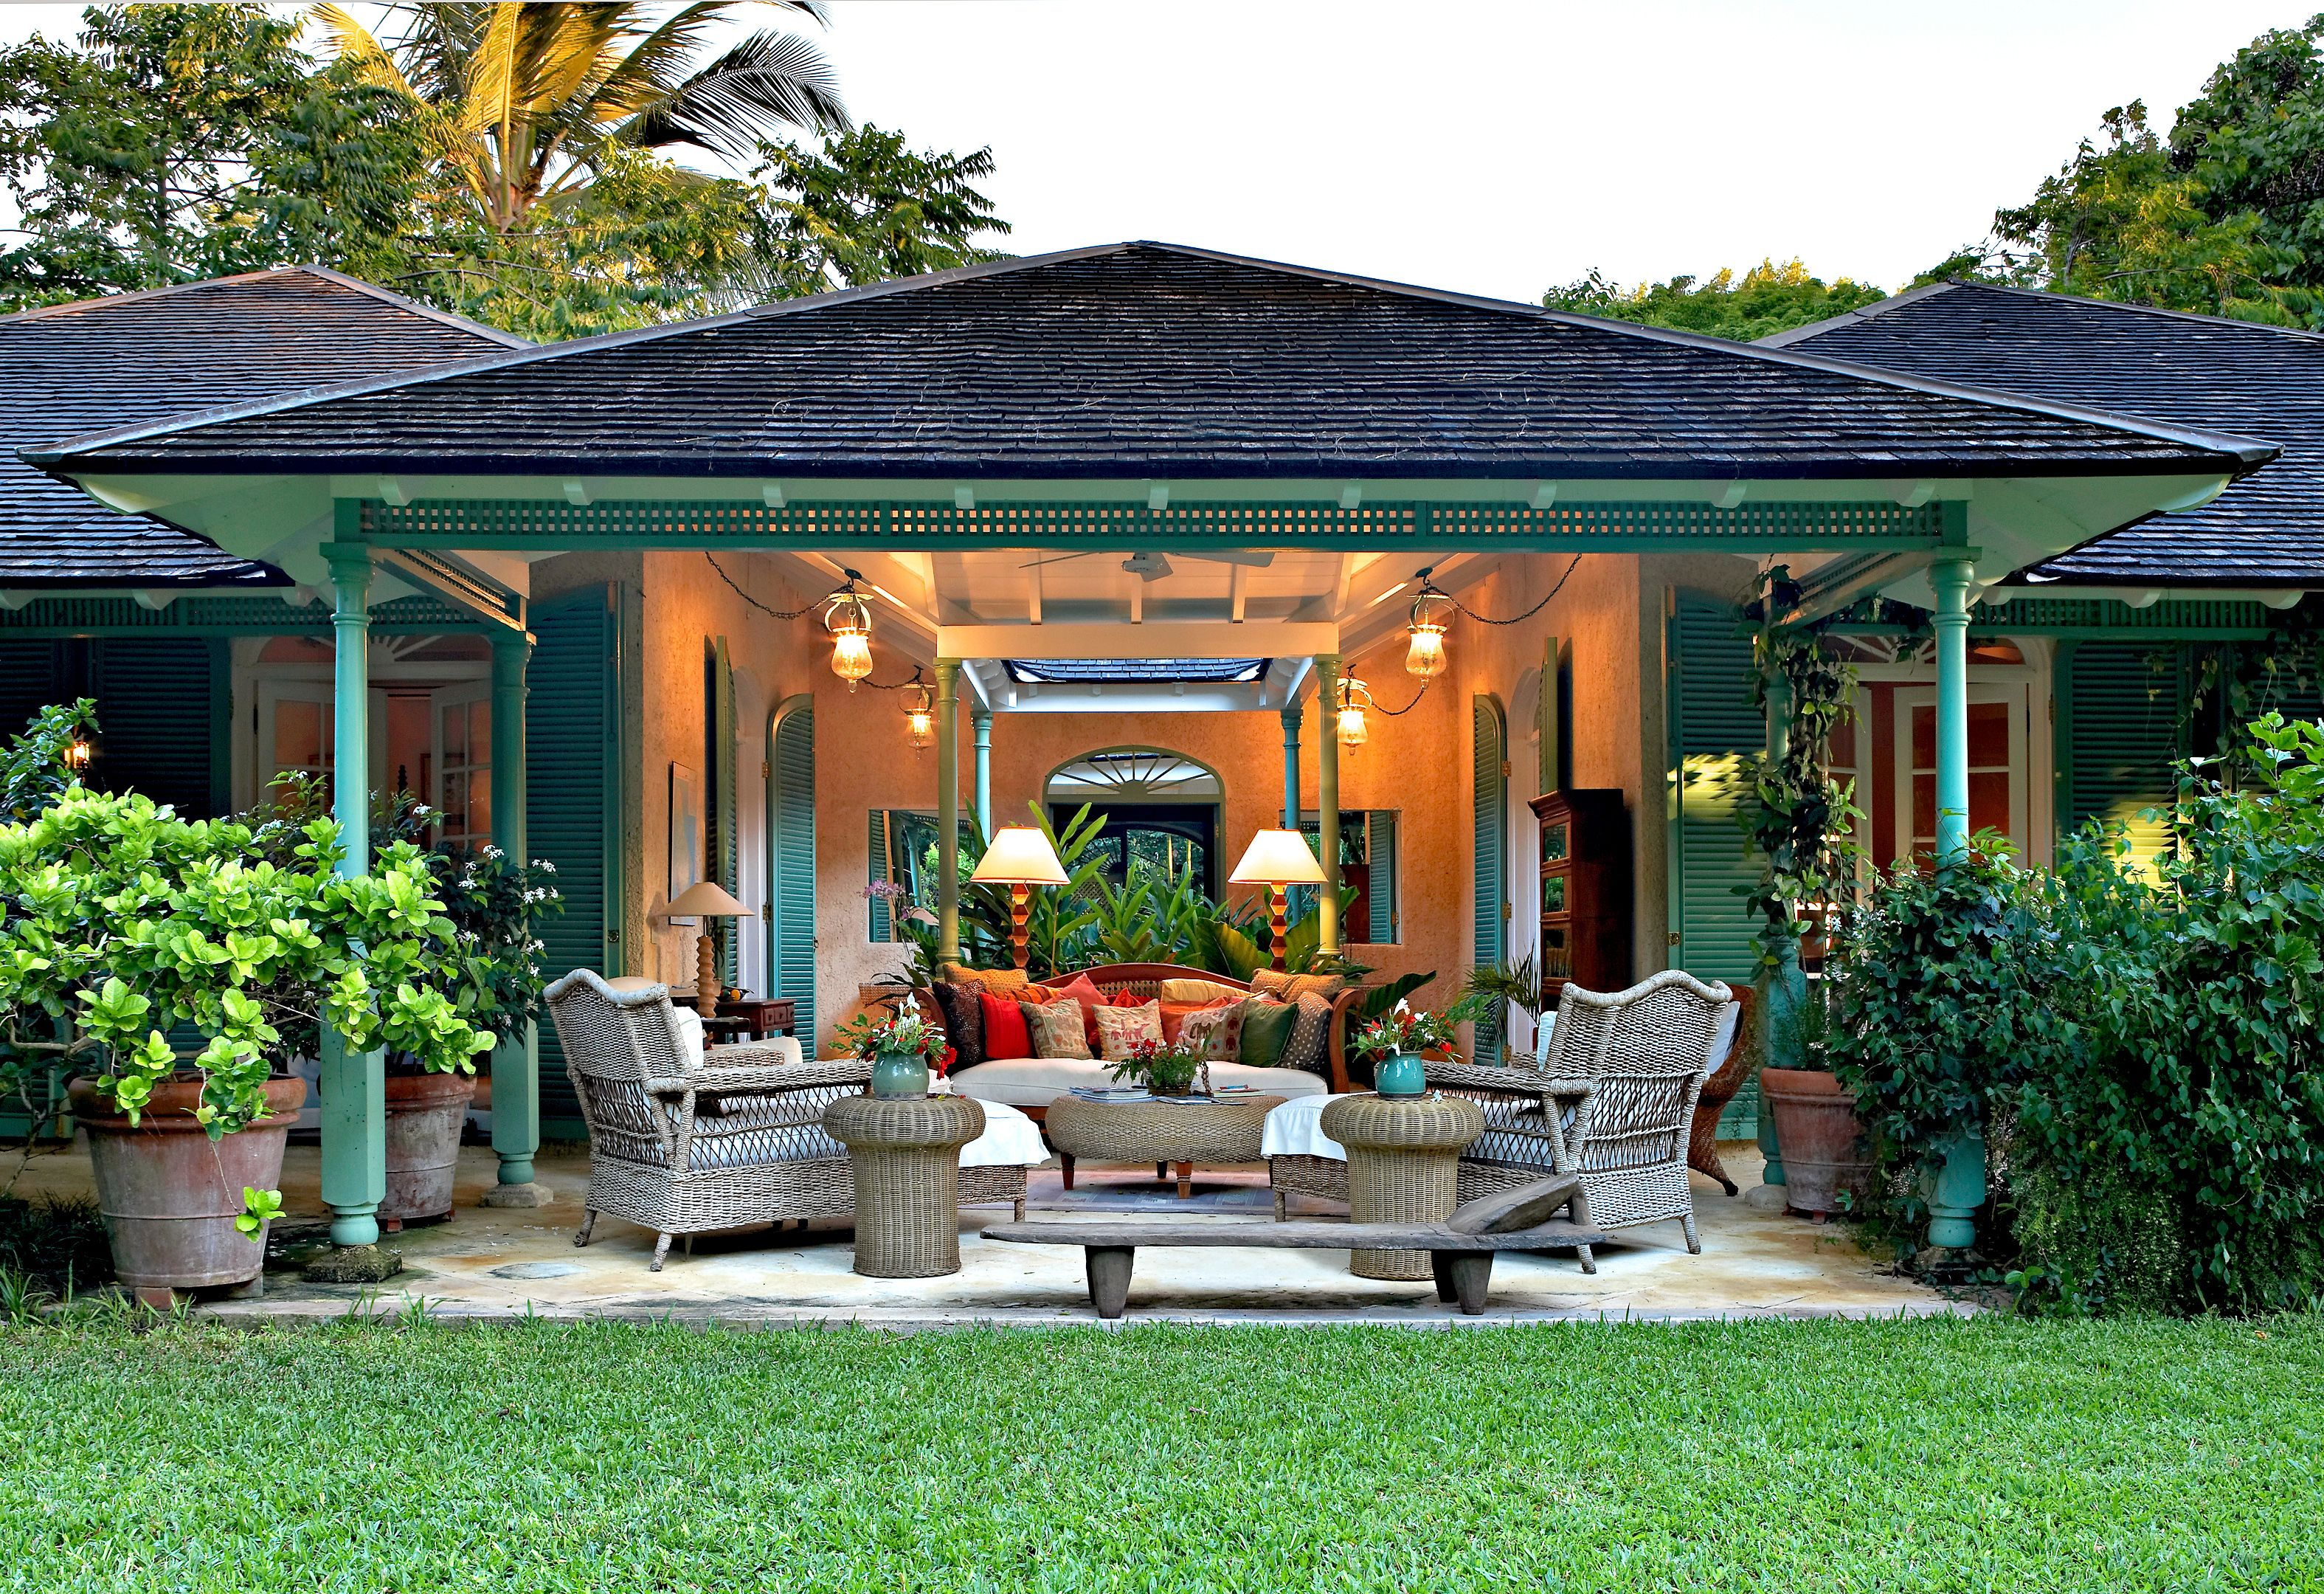 Caribbean Style Homes in Mexico | caribbean interior style ... on Outdoor Living Space Builders Near Me  id=32730